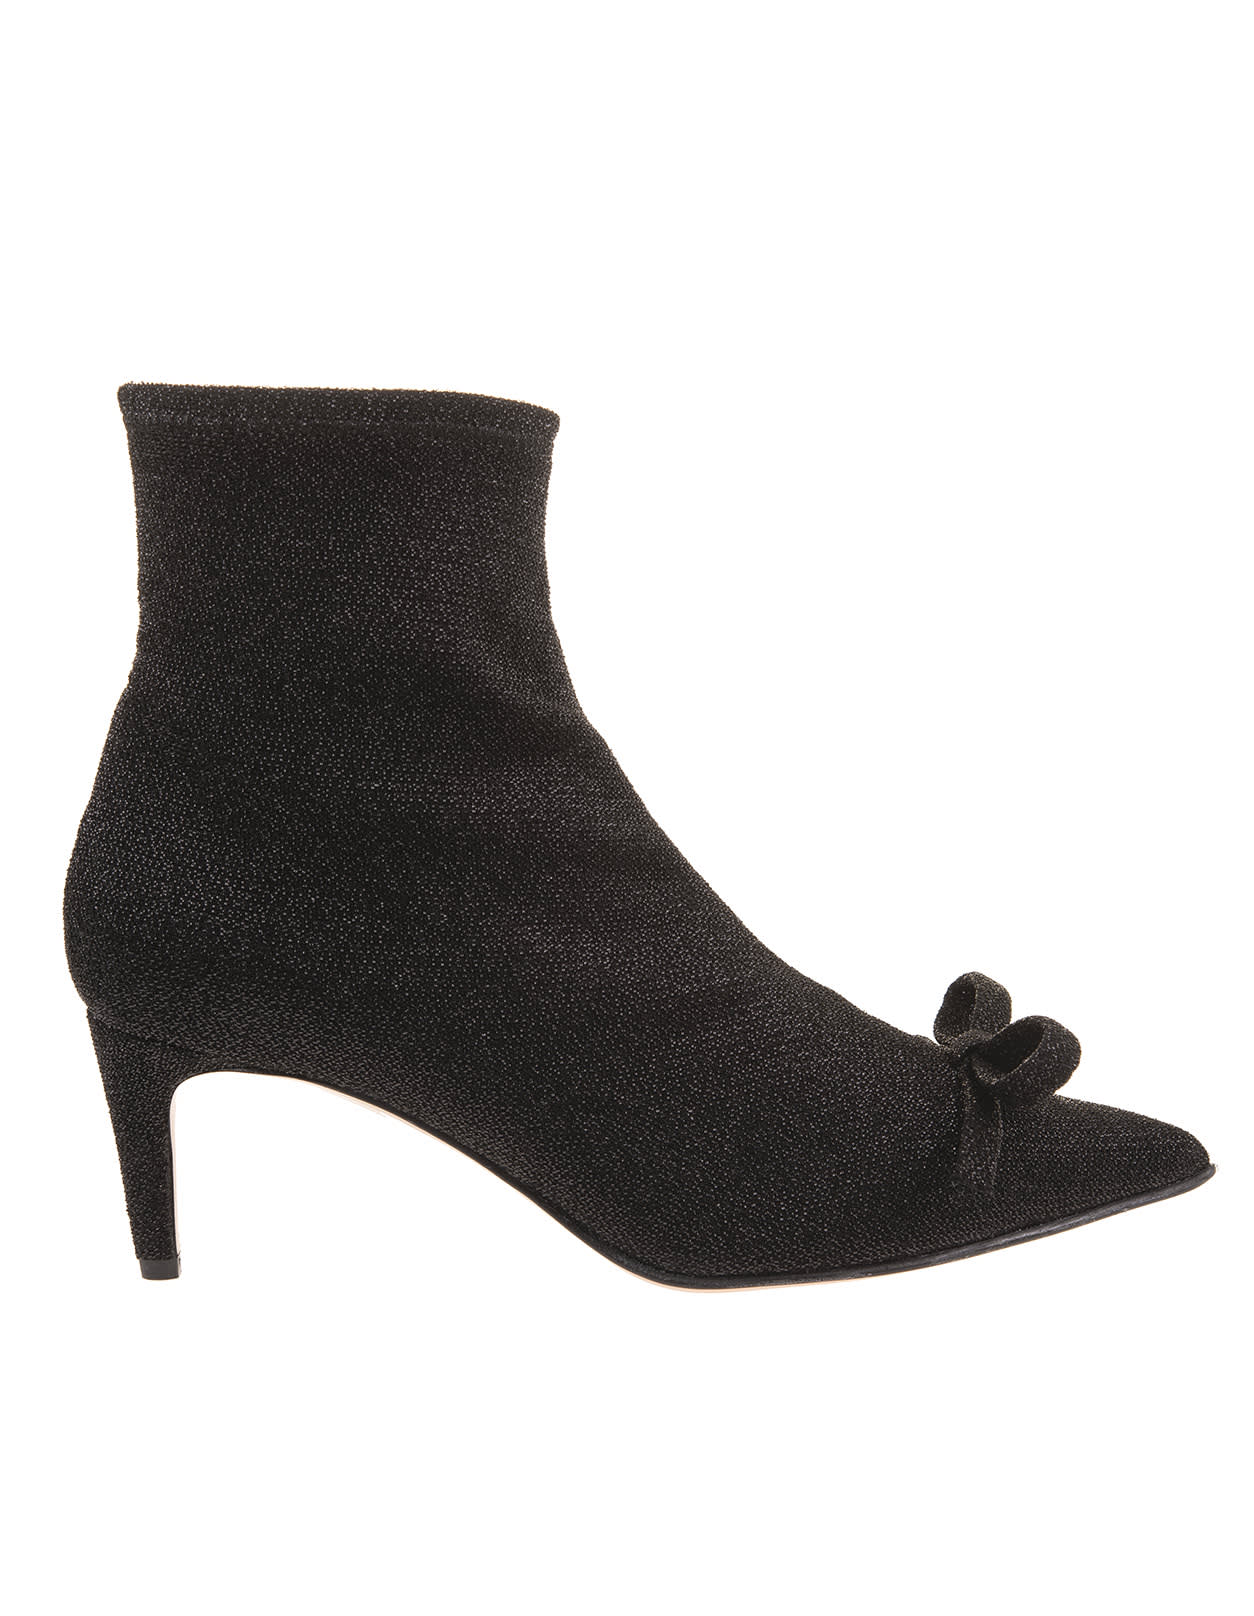 Red Valentino WOMAN BLACK LUREX ANKLE BOOT WITH BOW